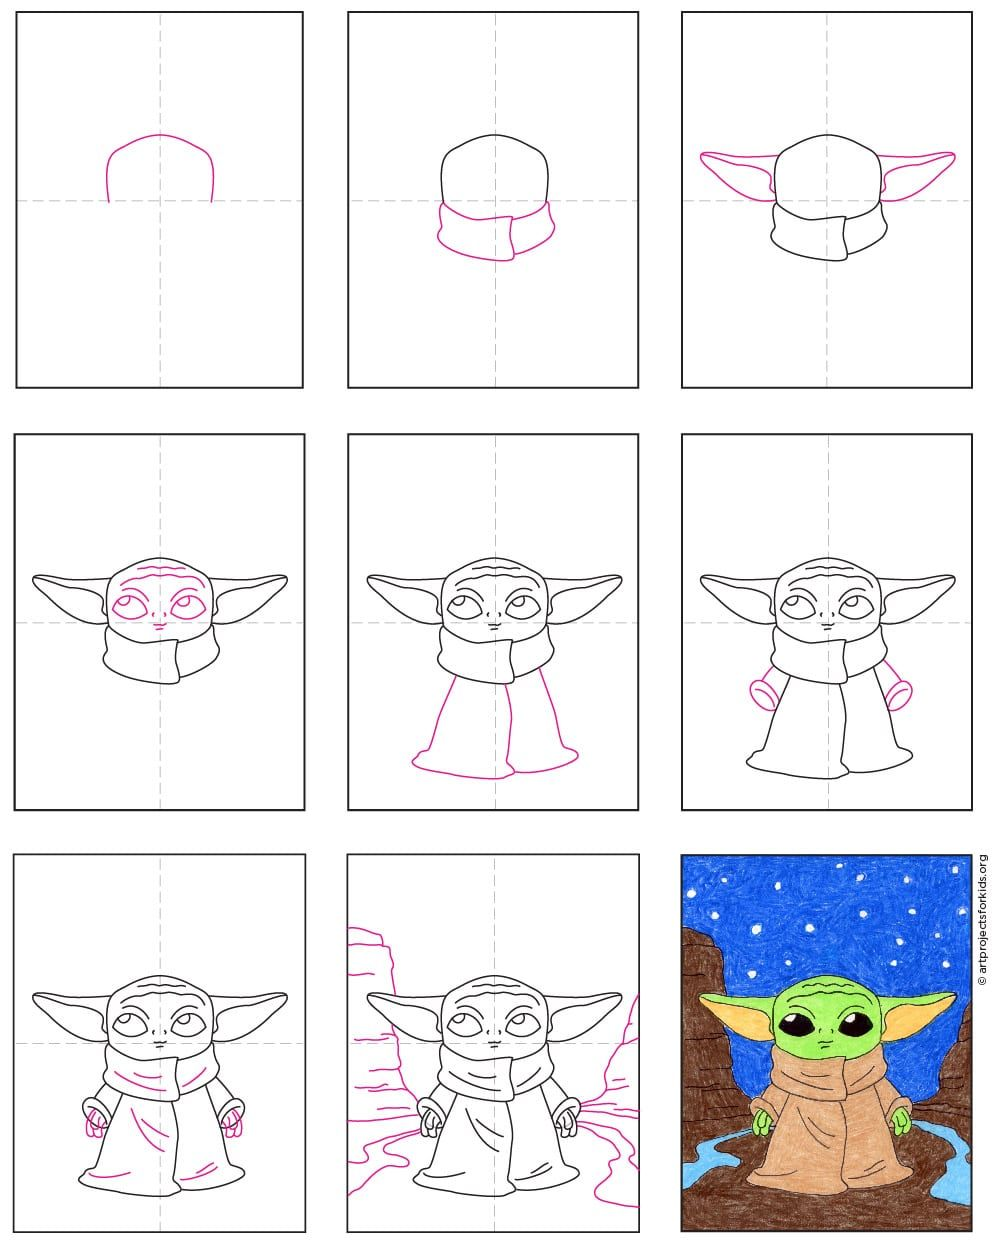 Draw Baby Yoda In Space Art Projects For Kids Star Wars Art Drawings Easy Doodle Art Space Art Projects